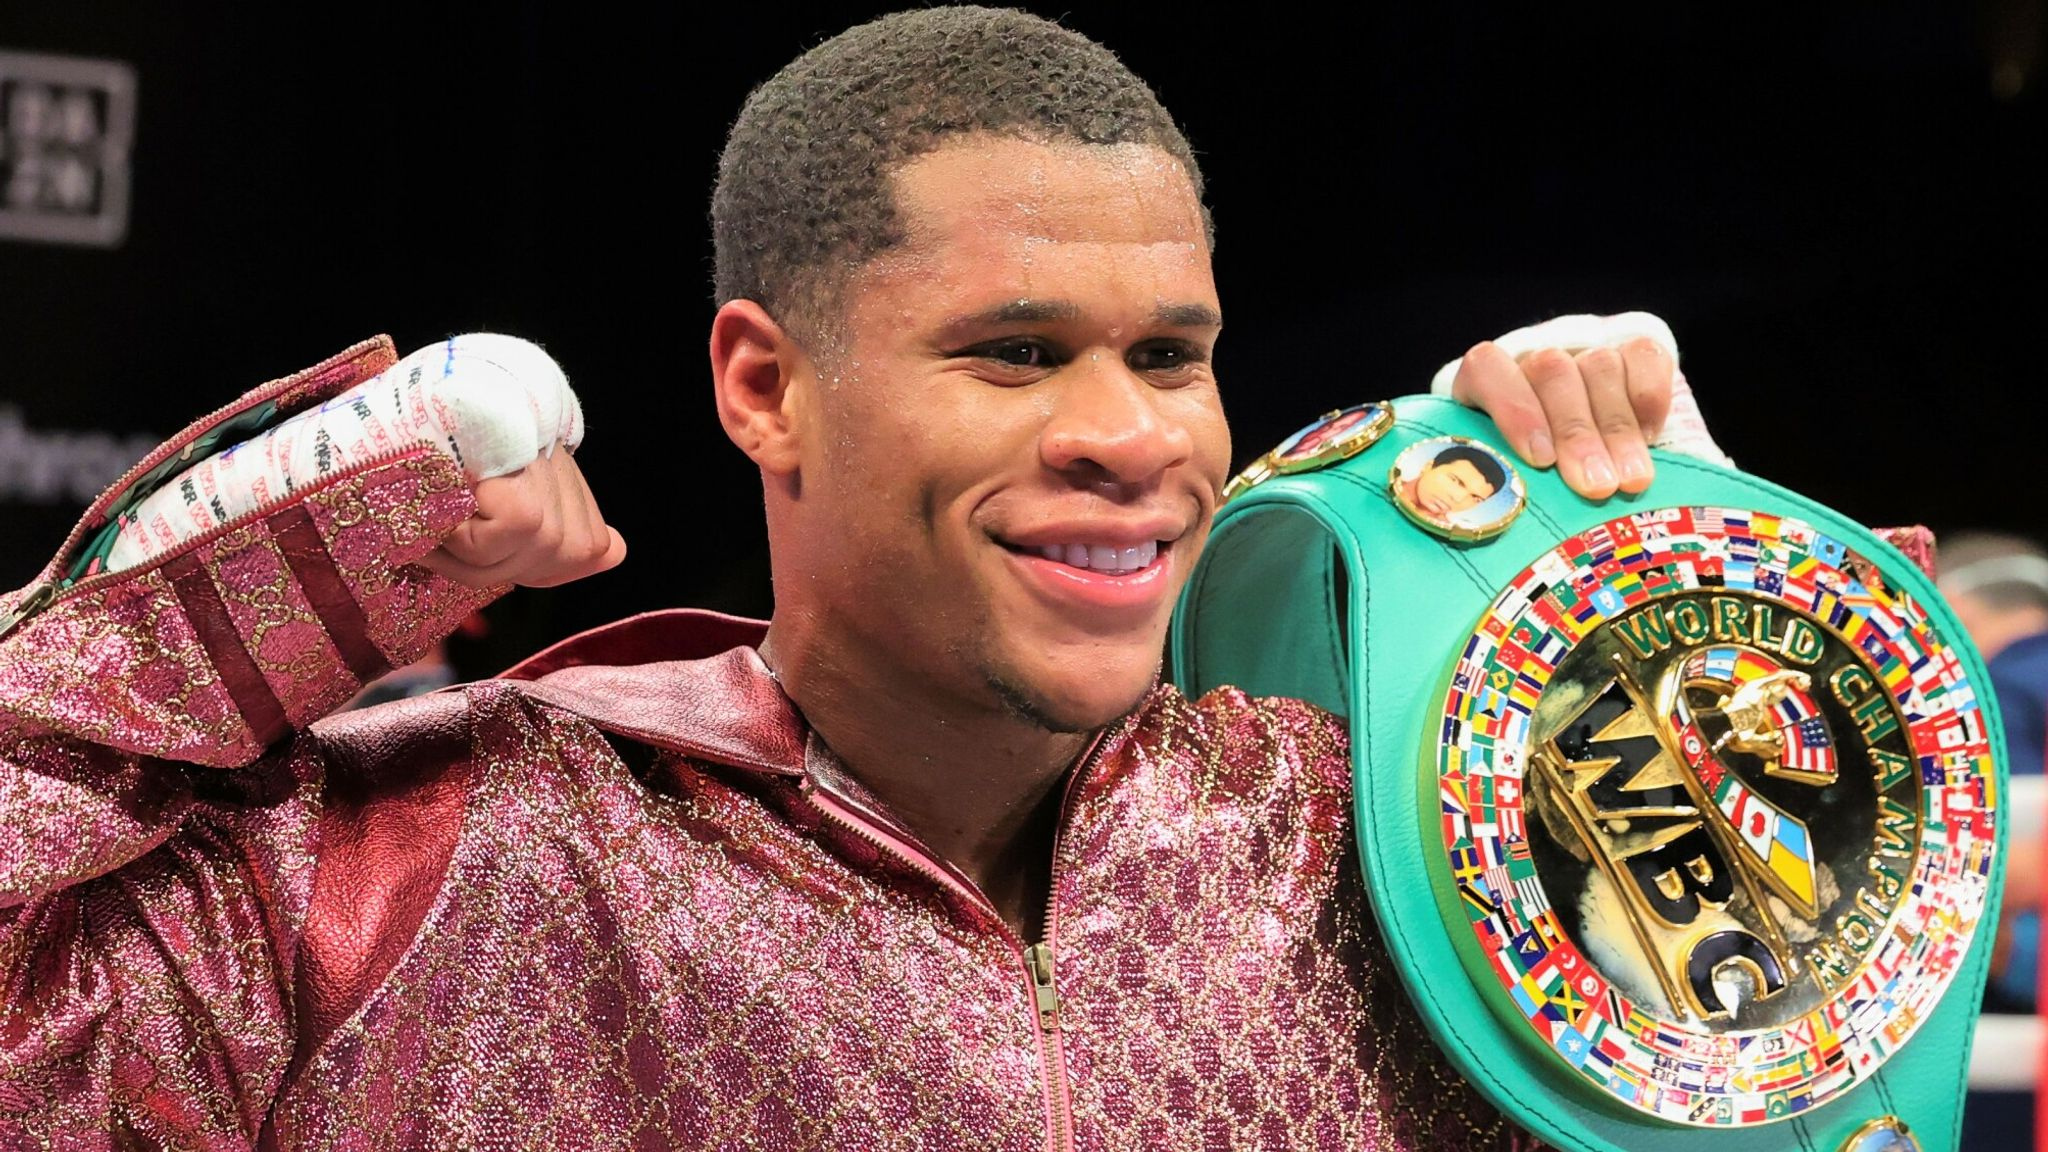 BOXING News: Devin Haney played a joke on Rolando Romero, trying to find him in the trash can